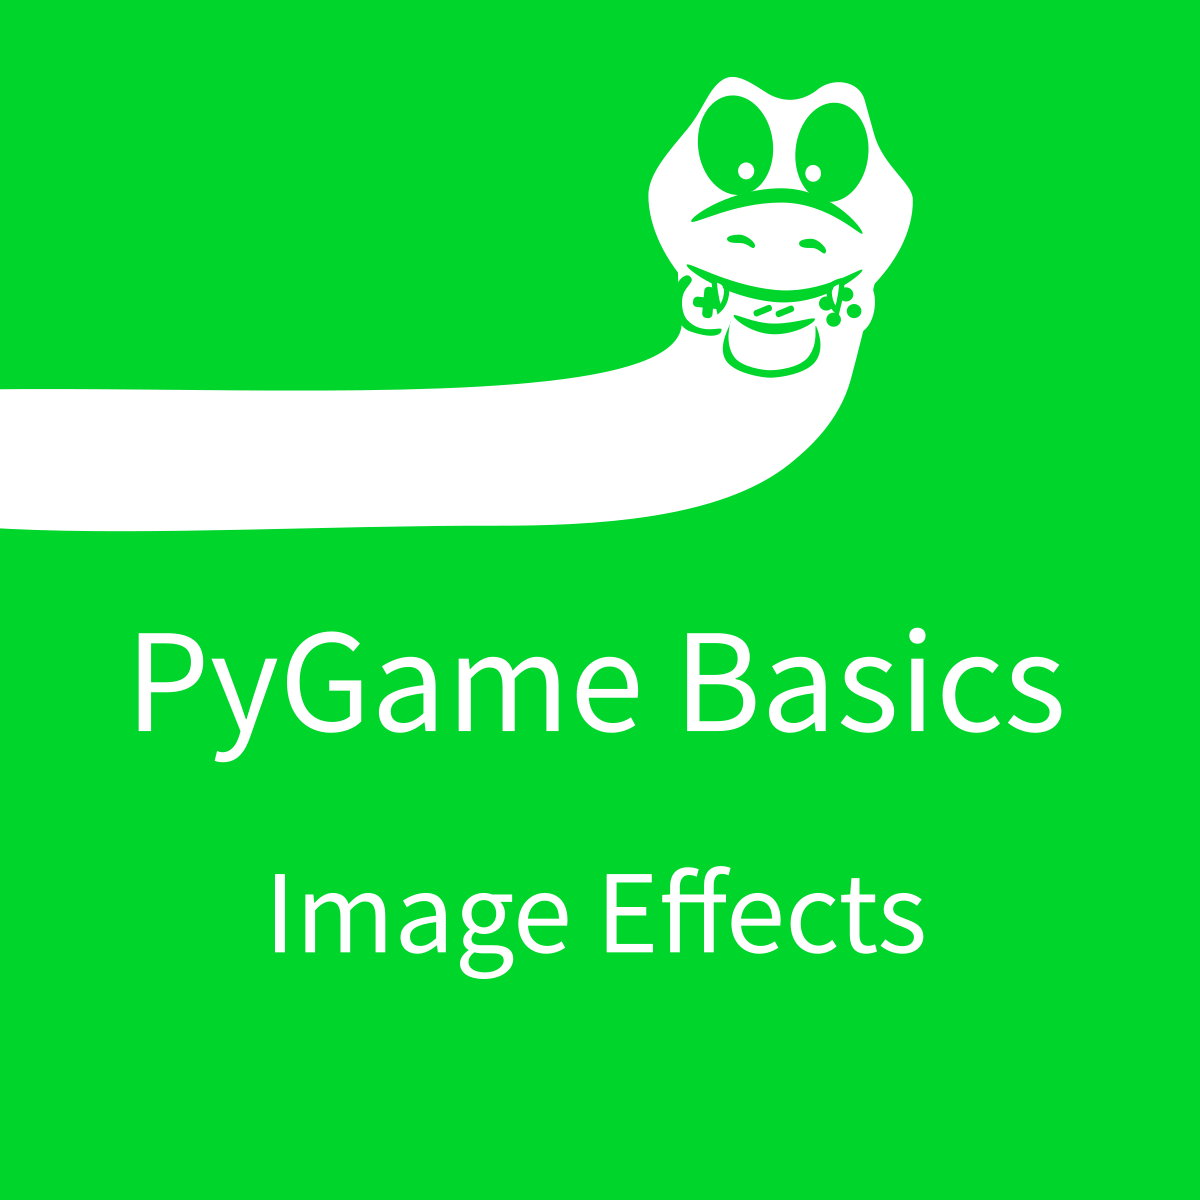 PyGame Basics: Image Effects